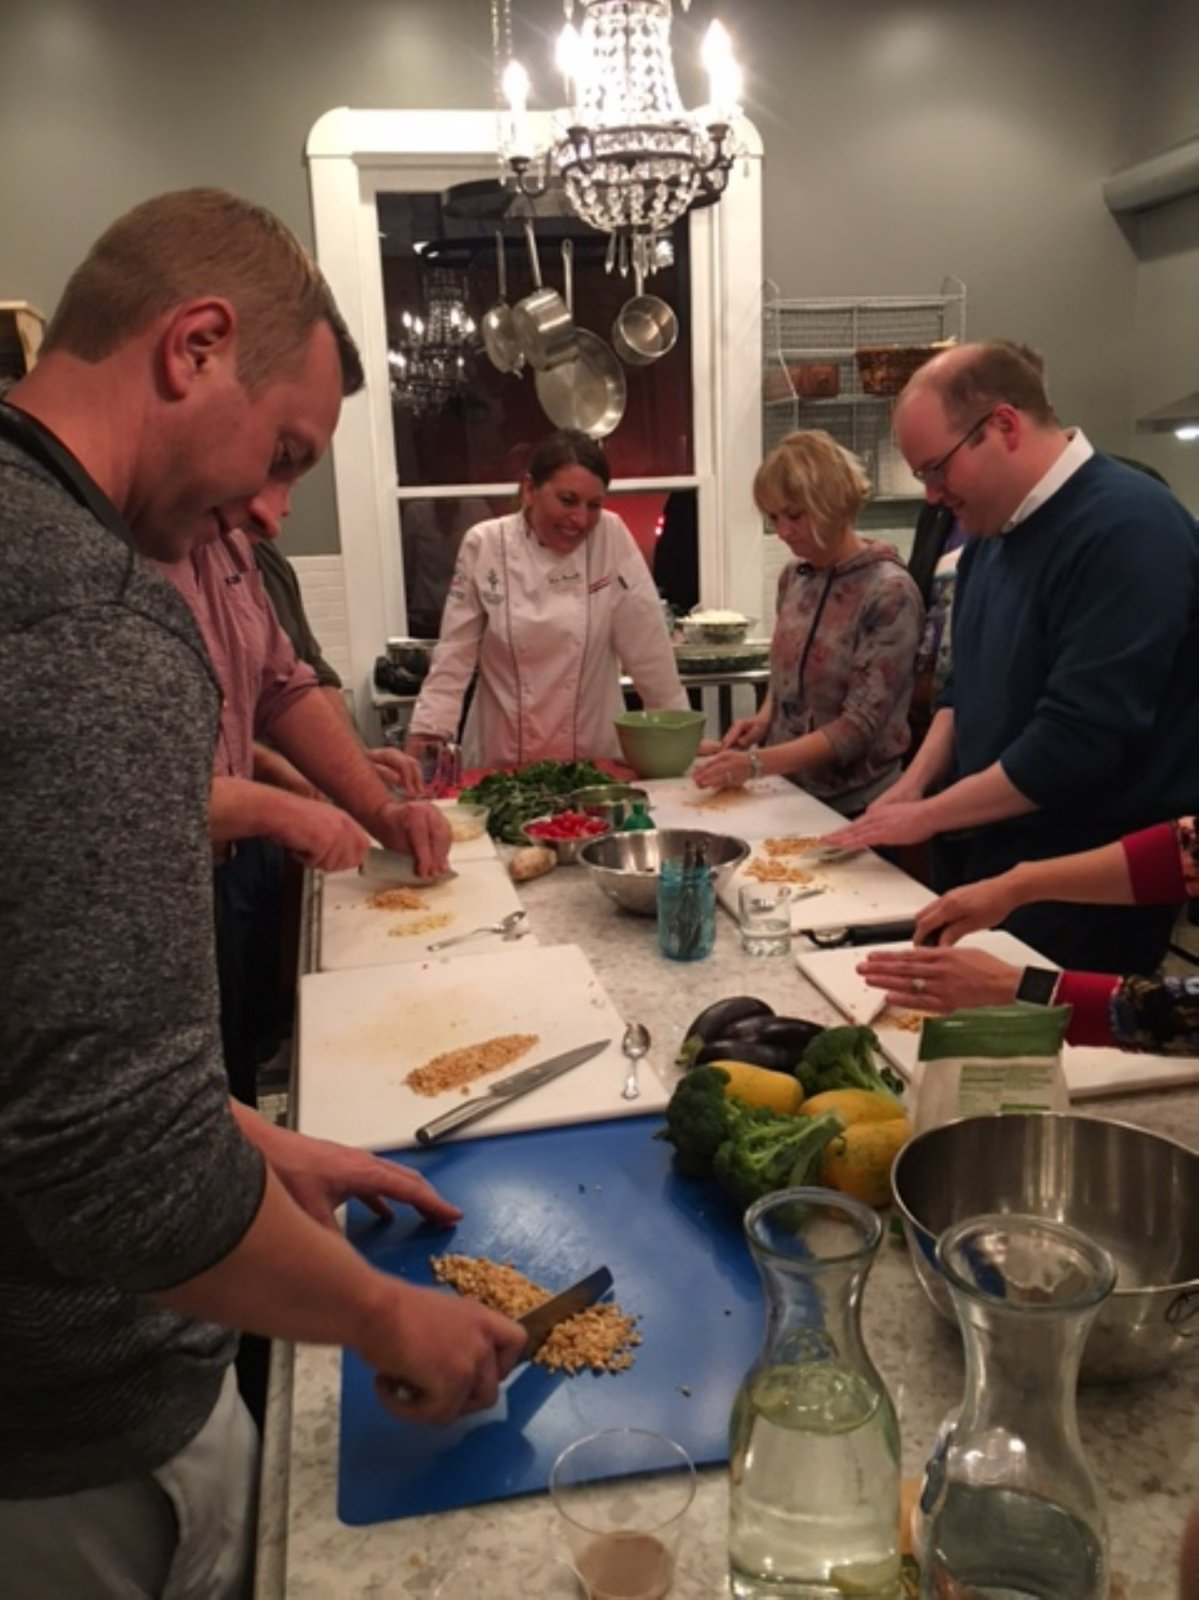 Indianapolis Cooking Classes - Indianapolis, IN Bed & Breakfast ...